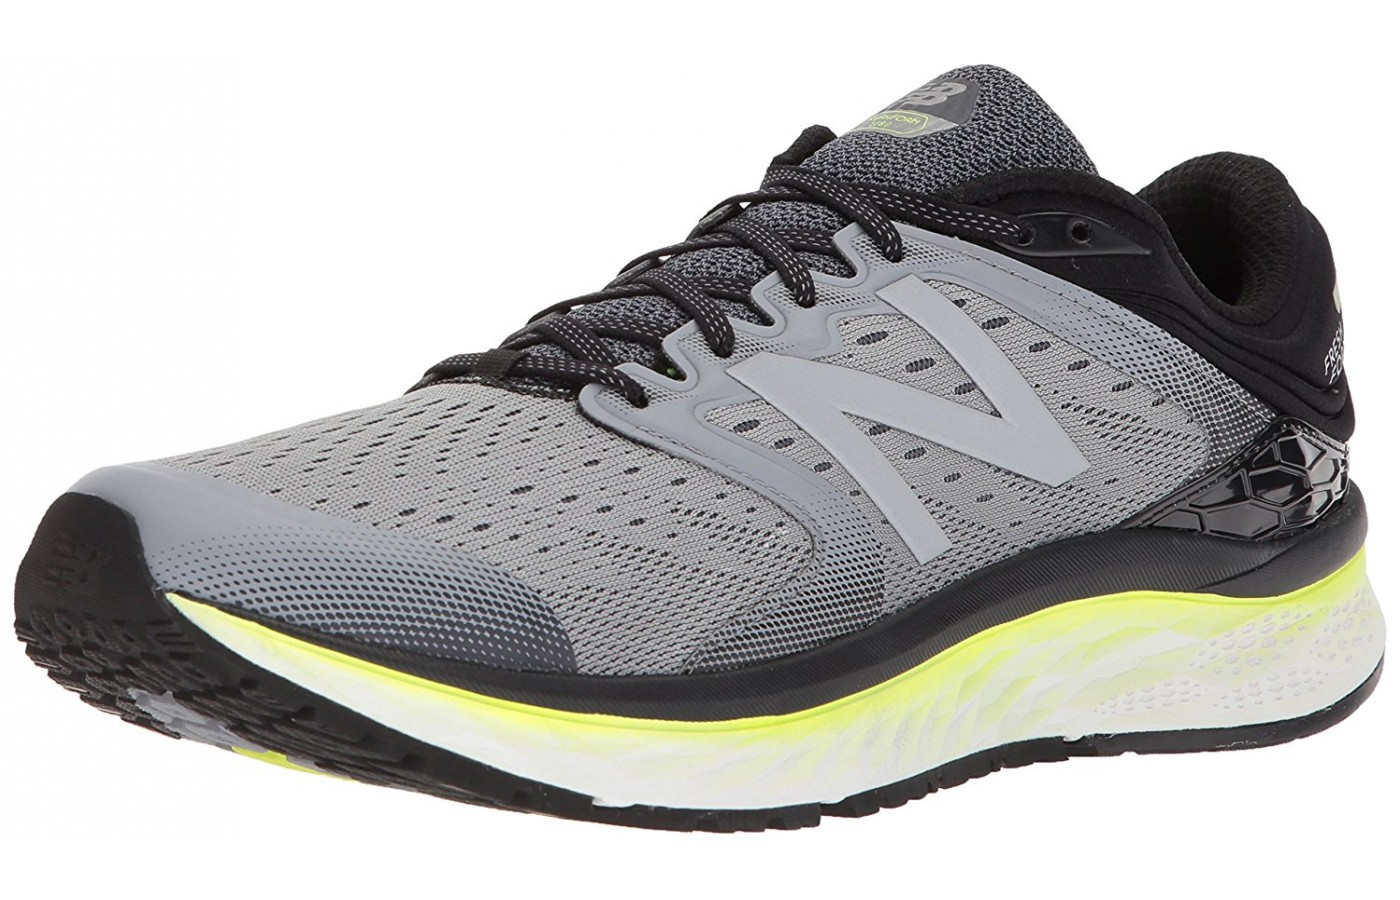 New Balance 1080V8 Reviewed & Tested for Performance